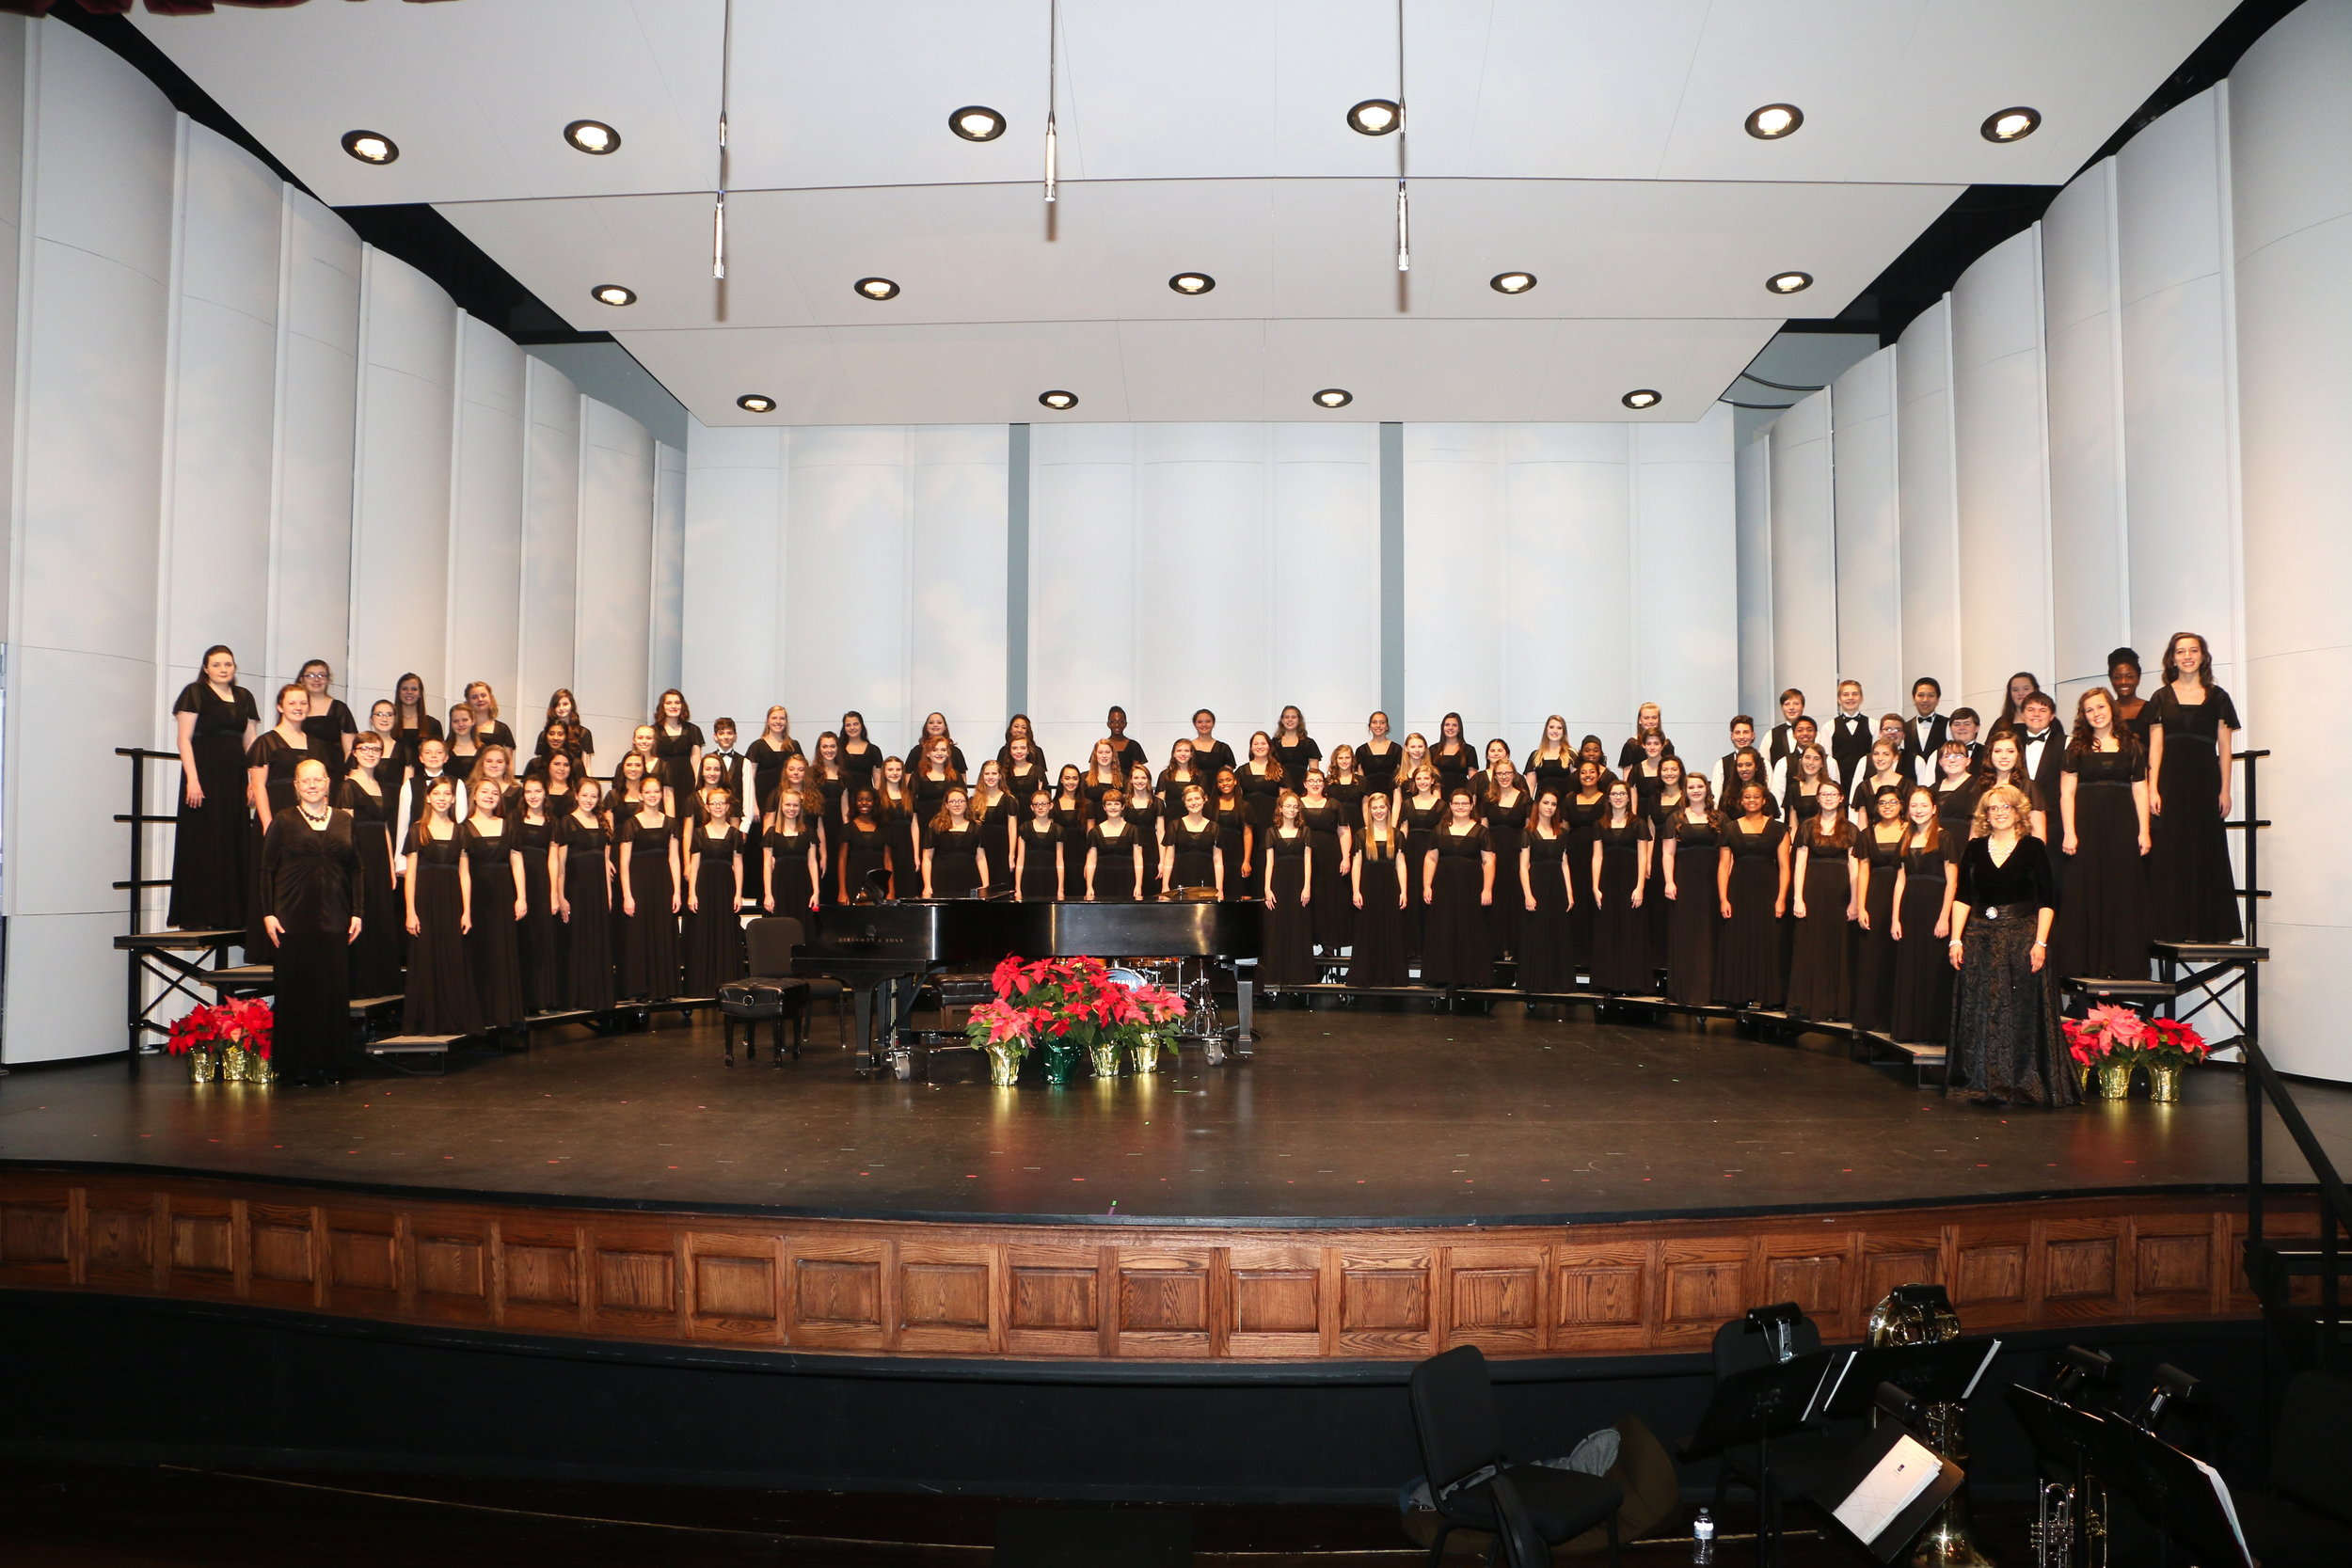 Concert Choir(12-18 years old) -